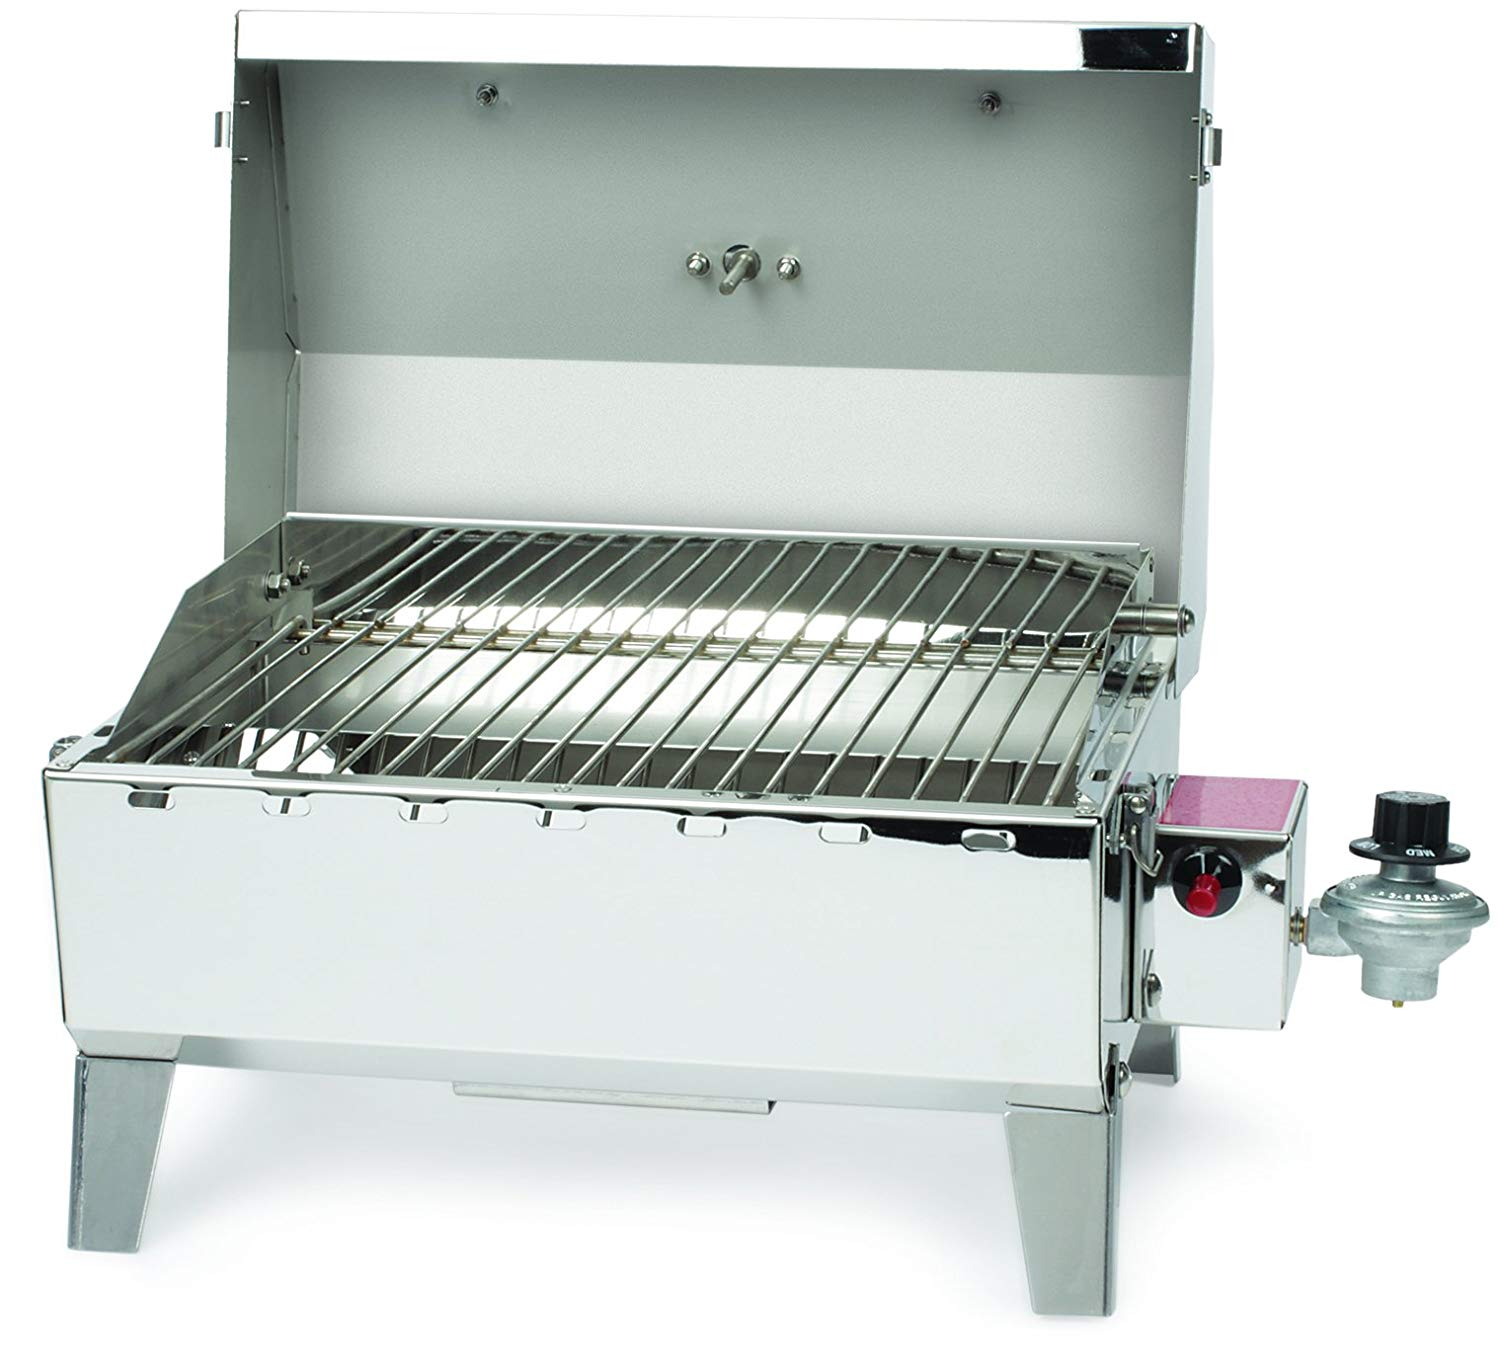 BBQ And Grill - Buy Electric, Charcoal and Propane Grills At Best Prices